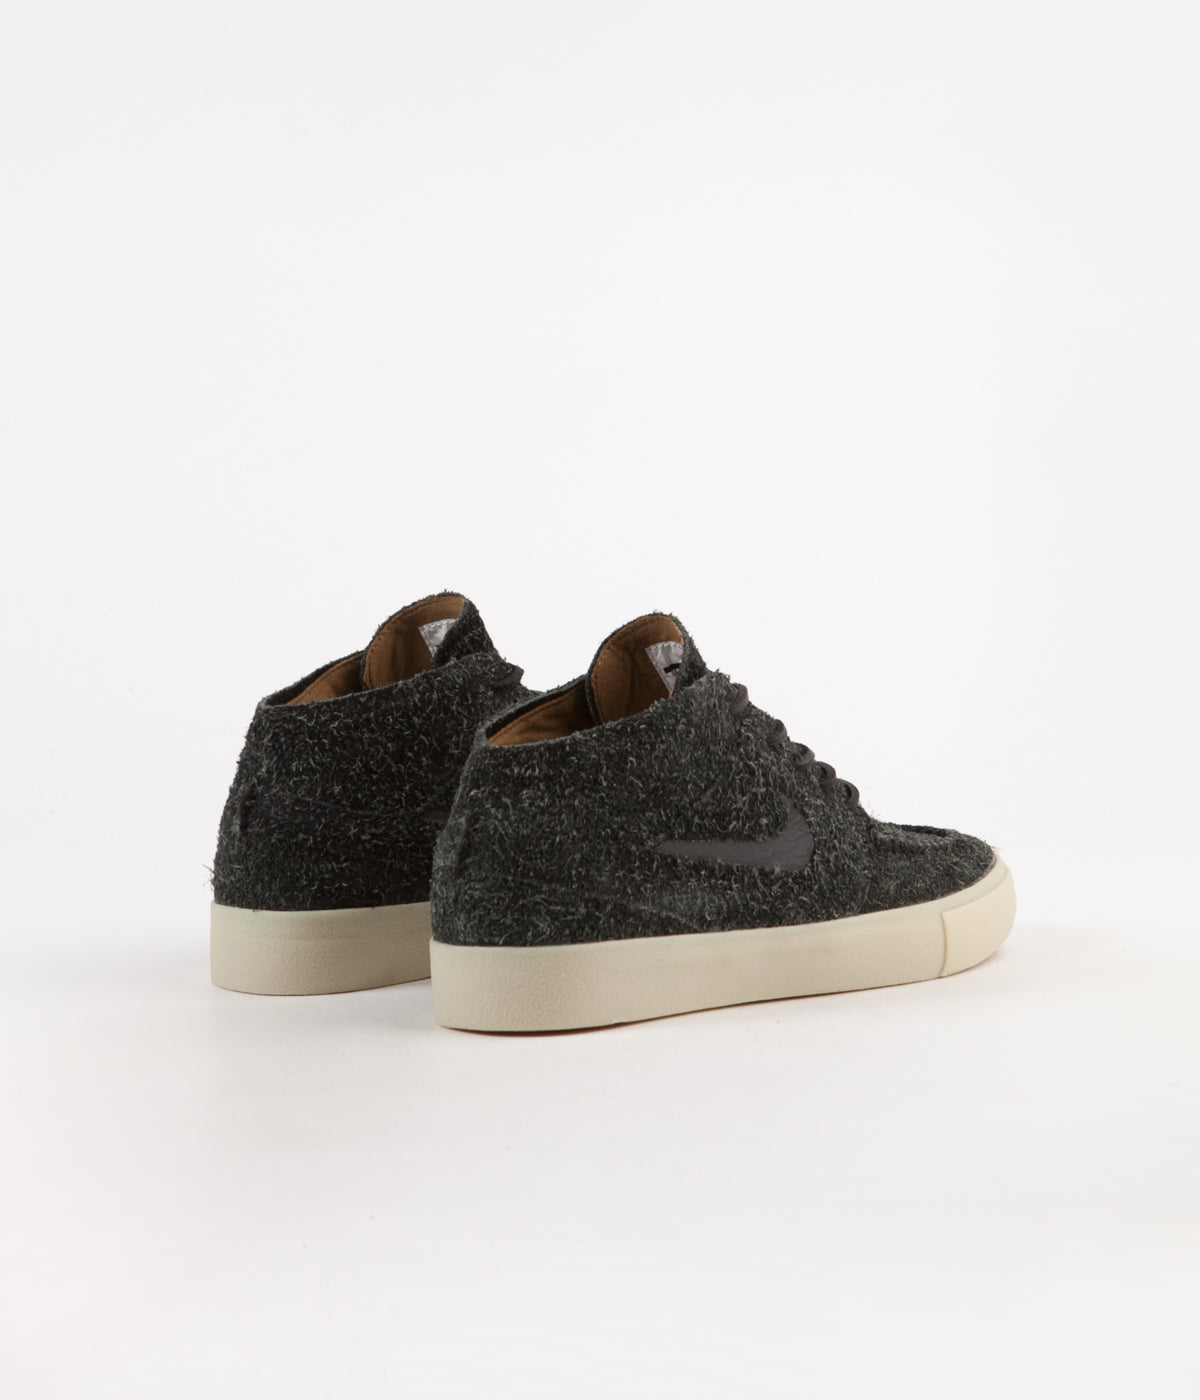 7948a6a3e42c6 Nike SB Janoski Mid Crafted Shoes - Black   Black - Golden Beige - Team Gold